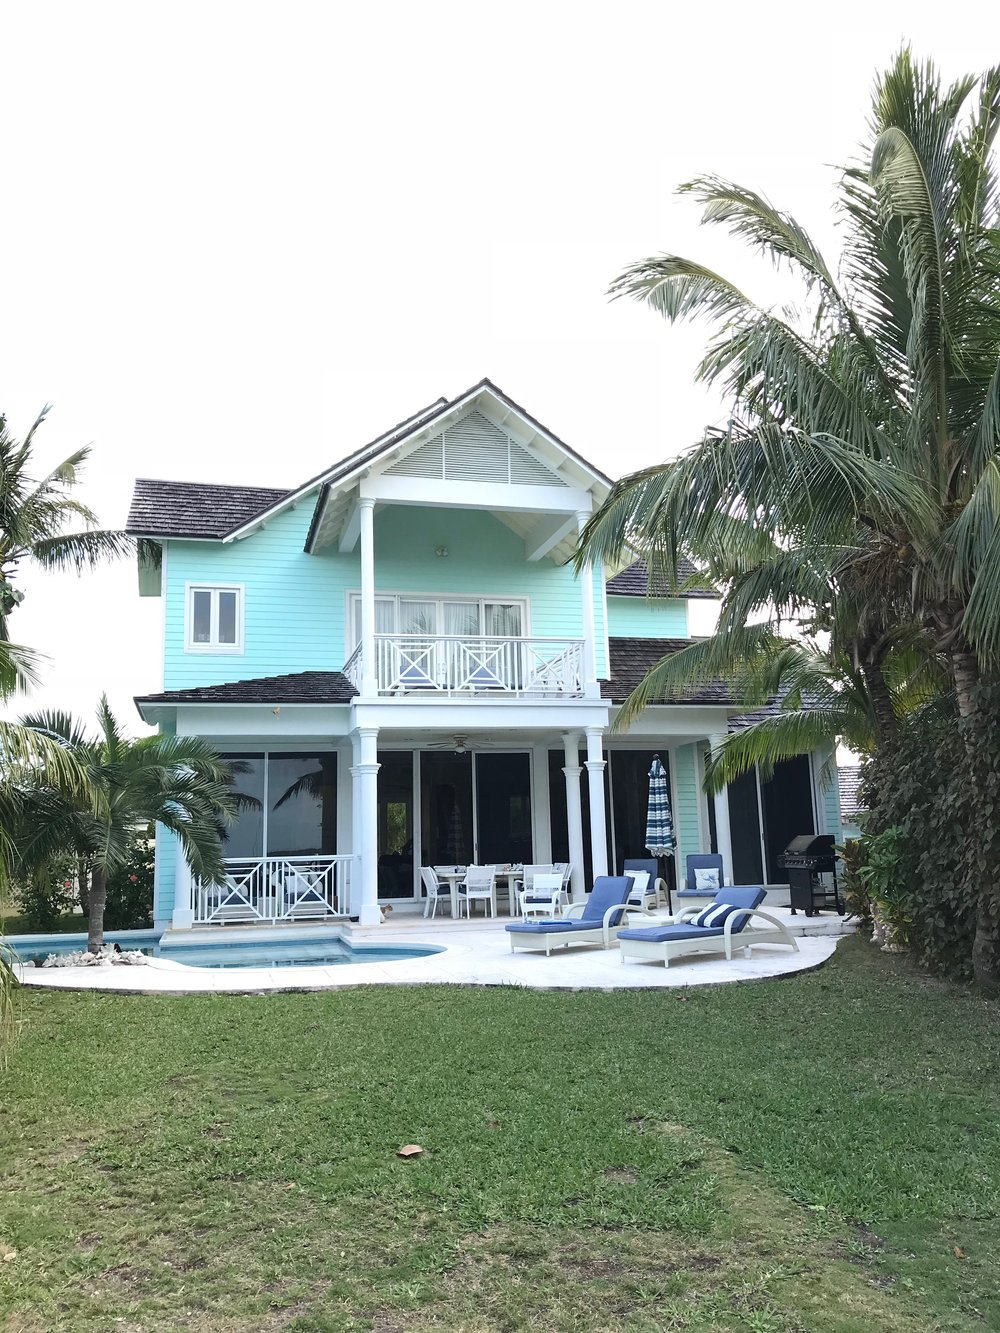 Seabreeze House Rental, Harbour Island, Bahamas